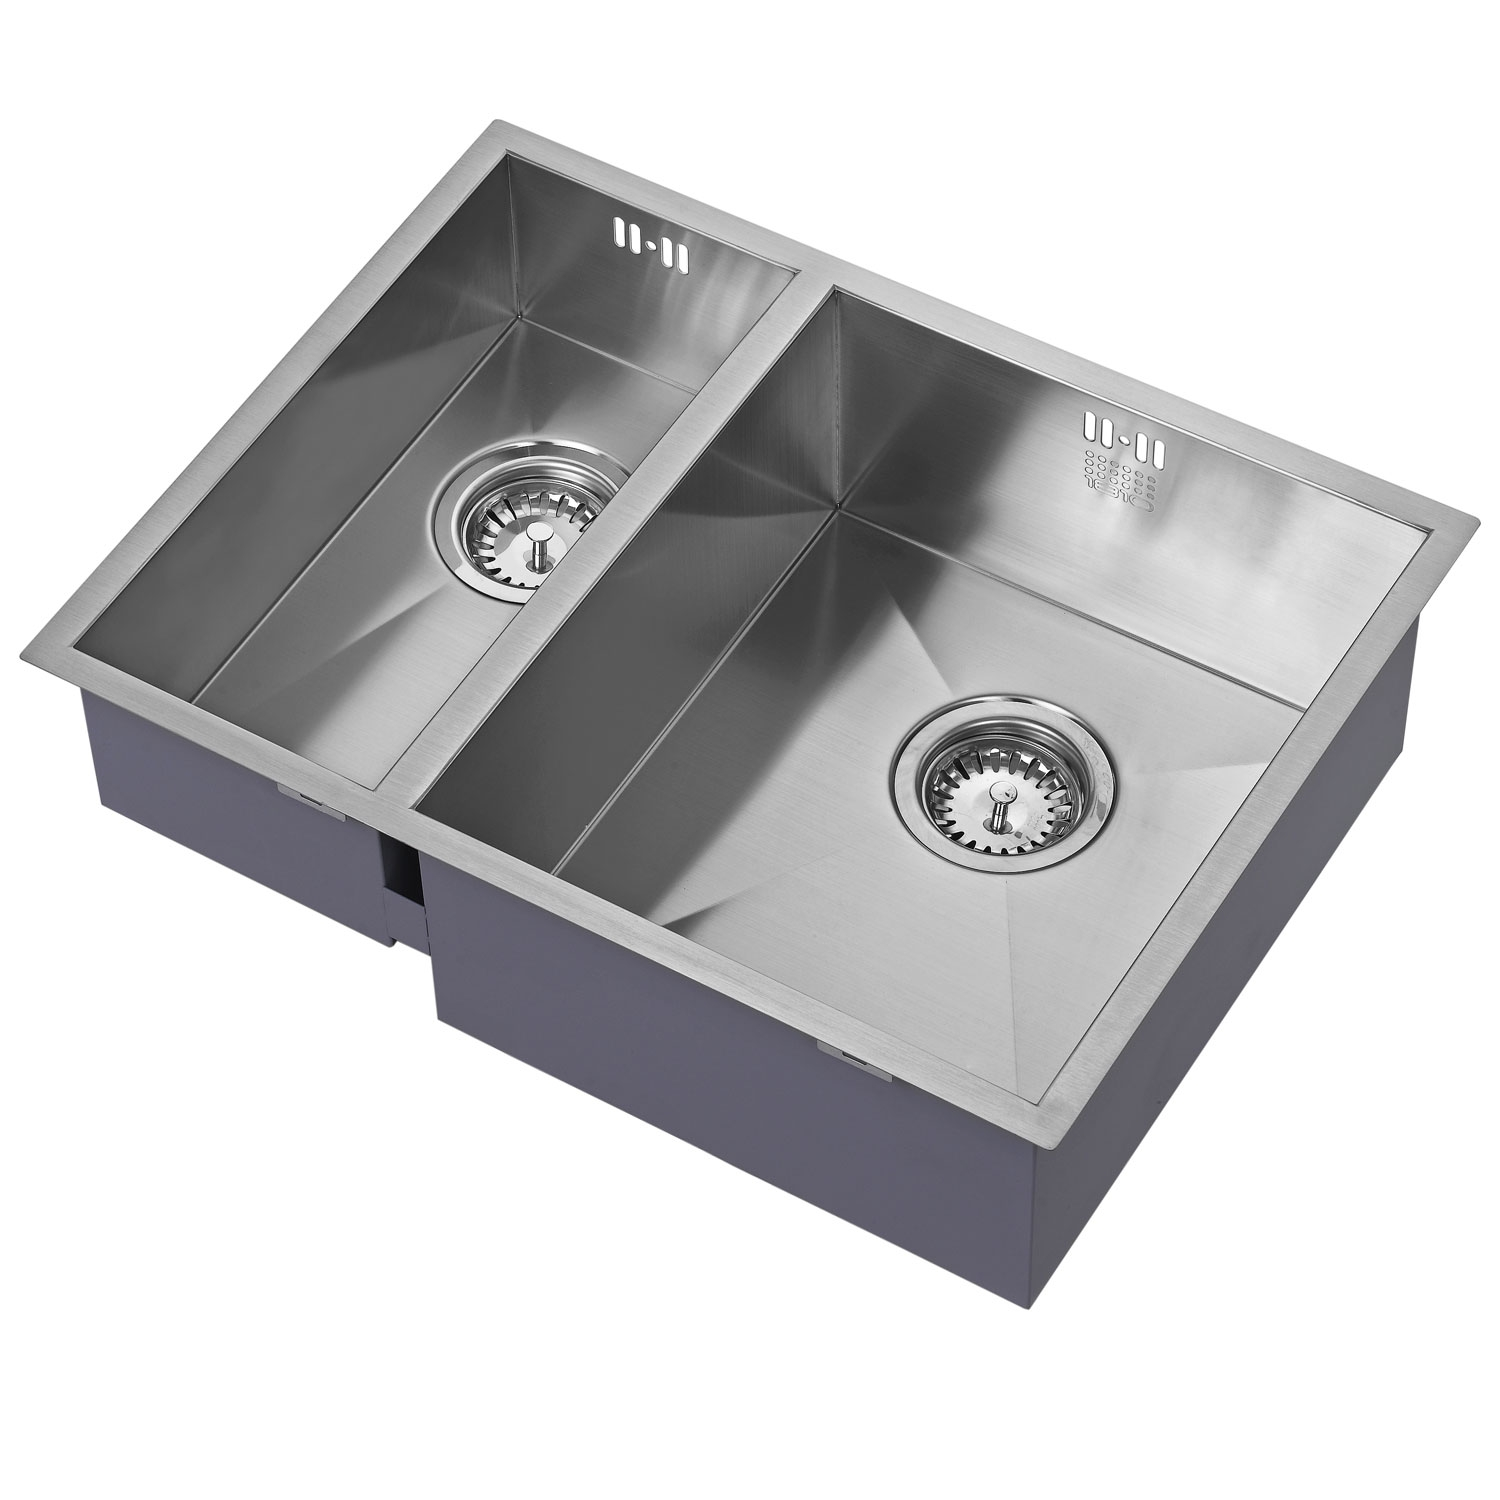 The 1810 Company Zenduo 180/340U 1.5 Bowl Kitchen Sink - Right Handed-0